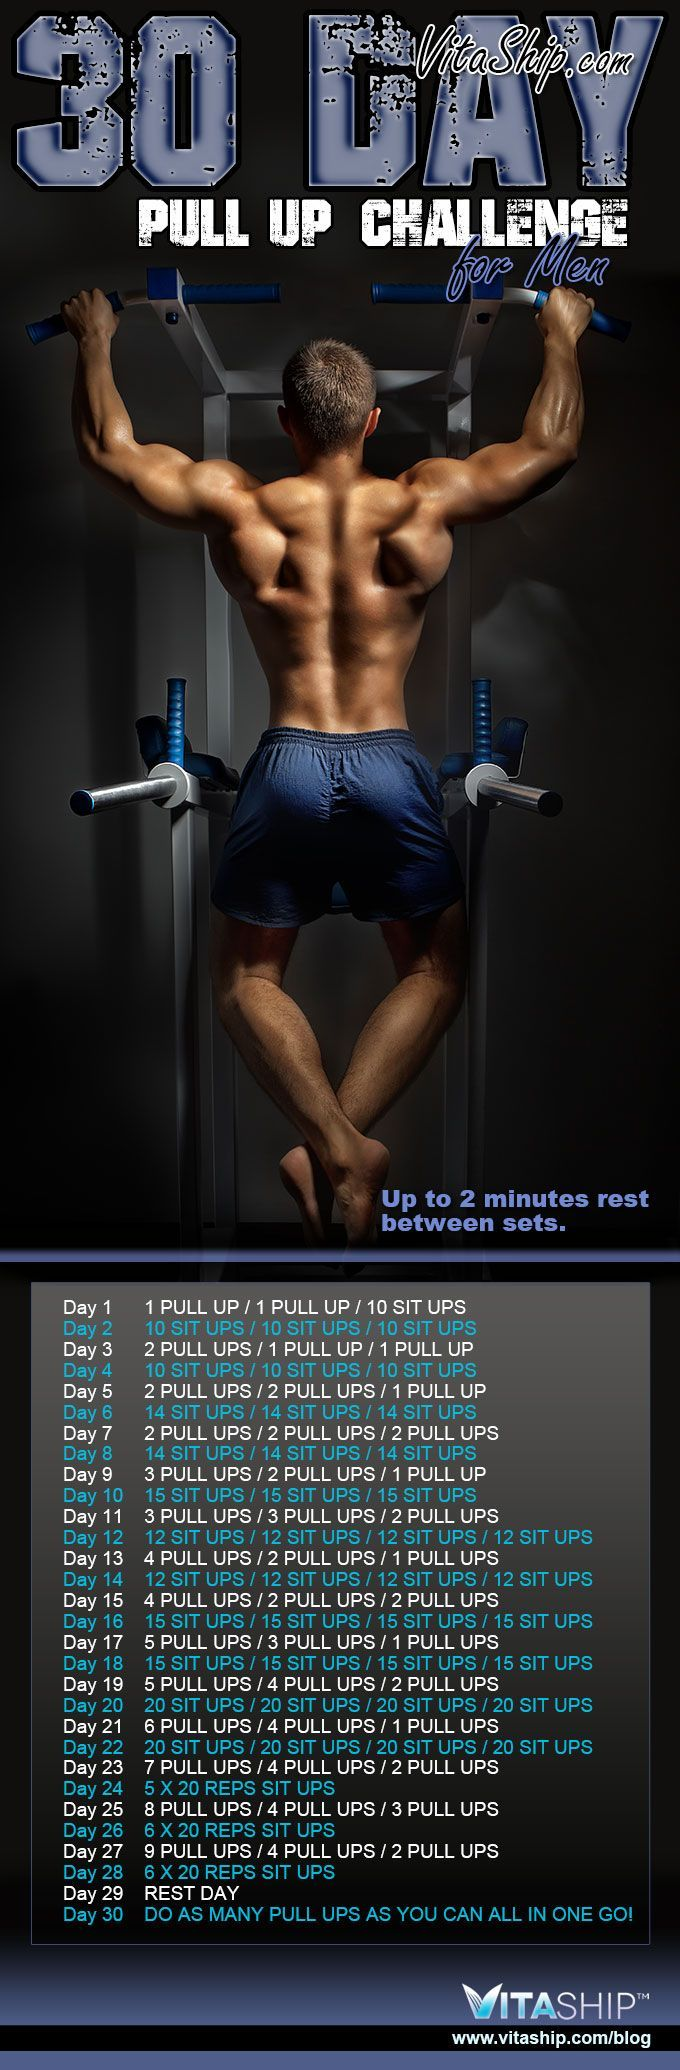 The 30-Day Pull Up Challenge for Men - Get Ripped... Get Hot Workout! With optimal health often comes clarity of thought. Click now to visit my blog for your free fitness solutions!